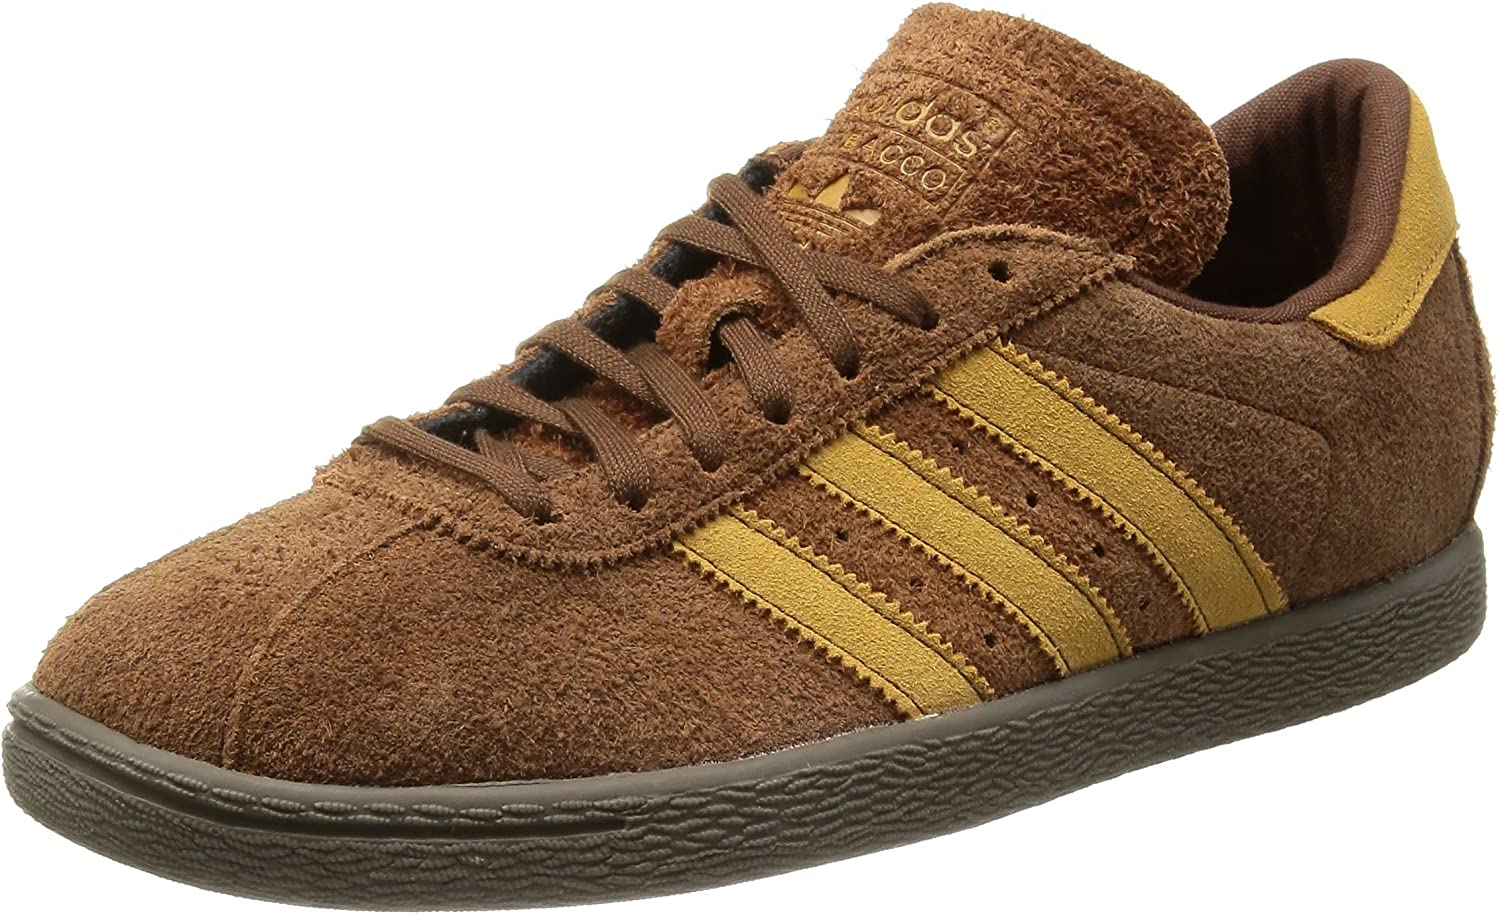 Bookkeeper premium Contemporary  Adidas Originals Tobacco Mens Trainers D65418: Amazon.co.uk: Shoes & Bags